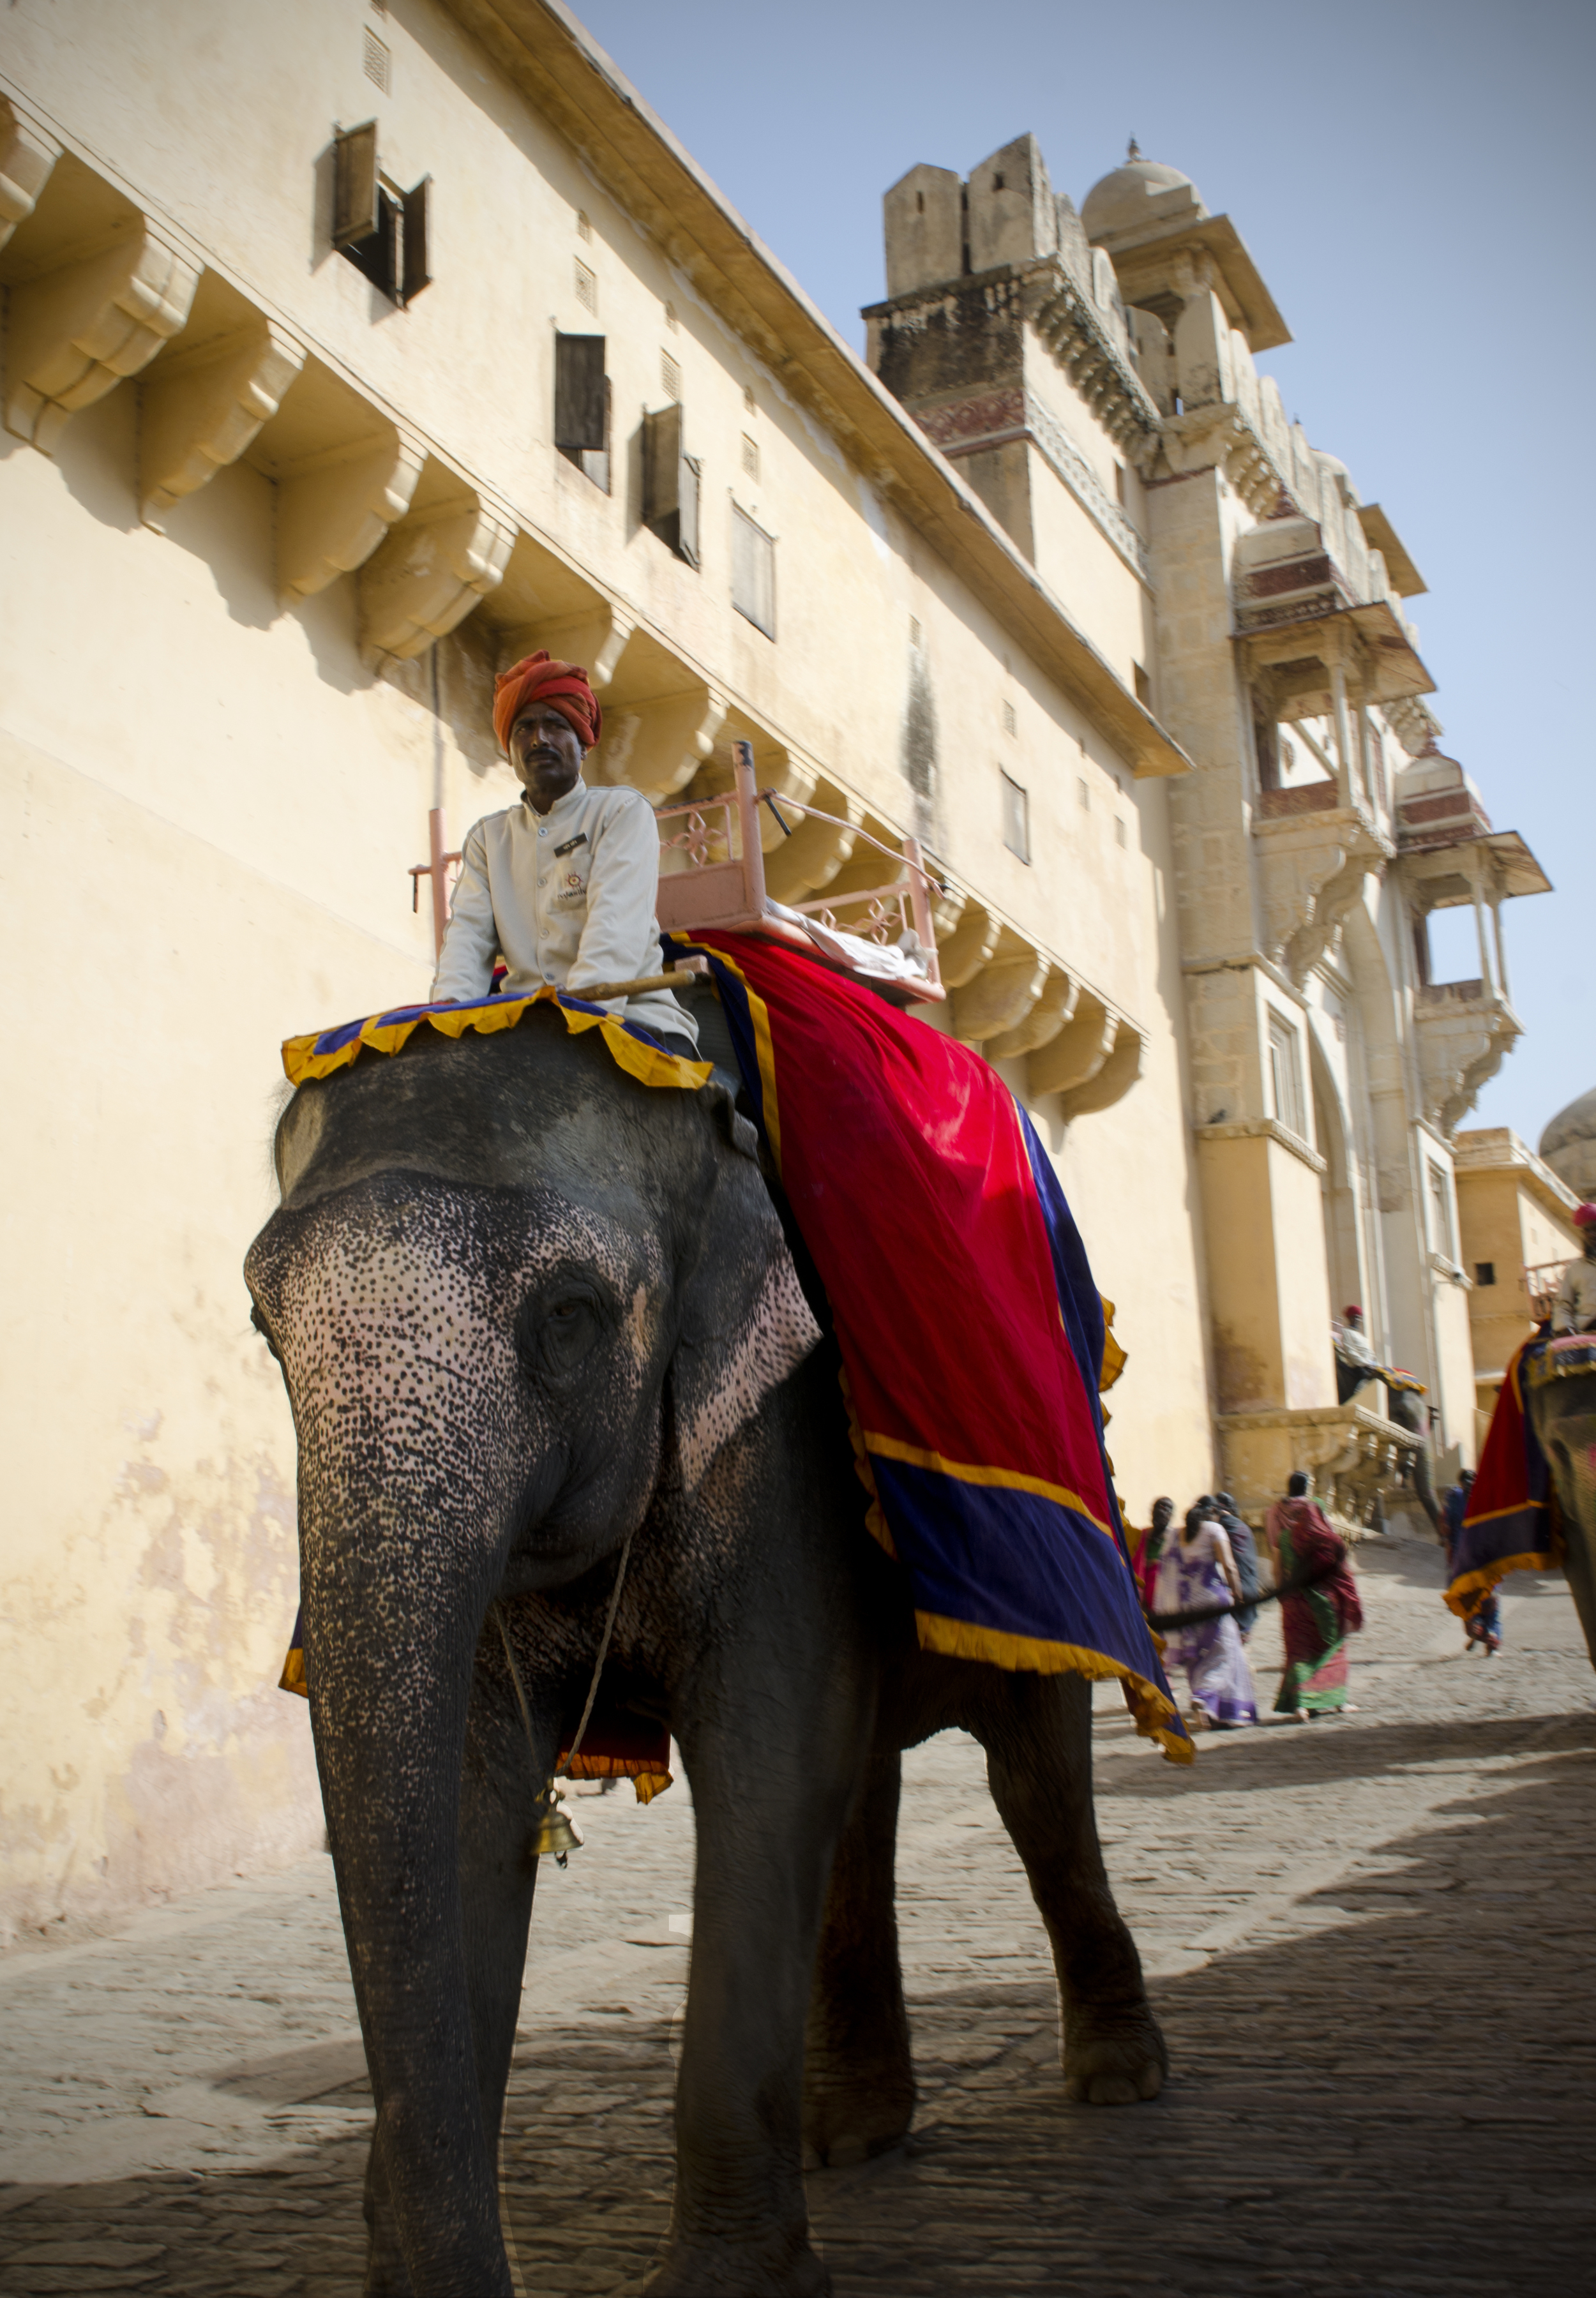 Elephants carrying people up and down to the Amber Palace